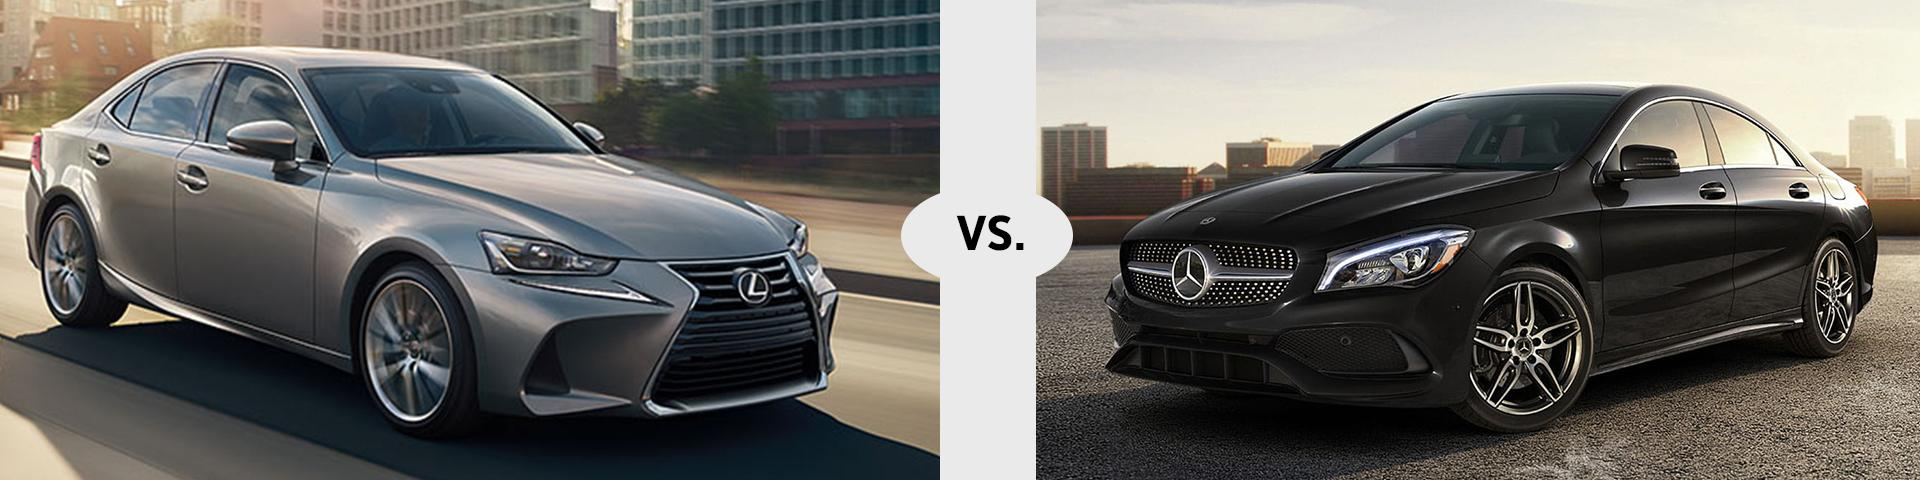 Lexus IS vs Mercedes CLA